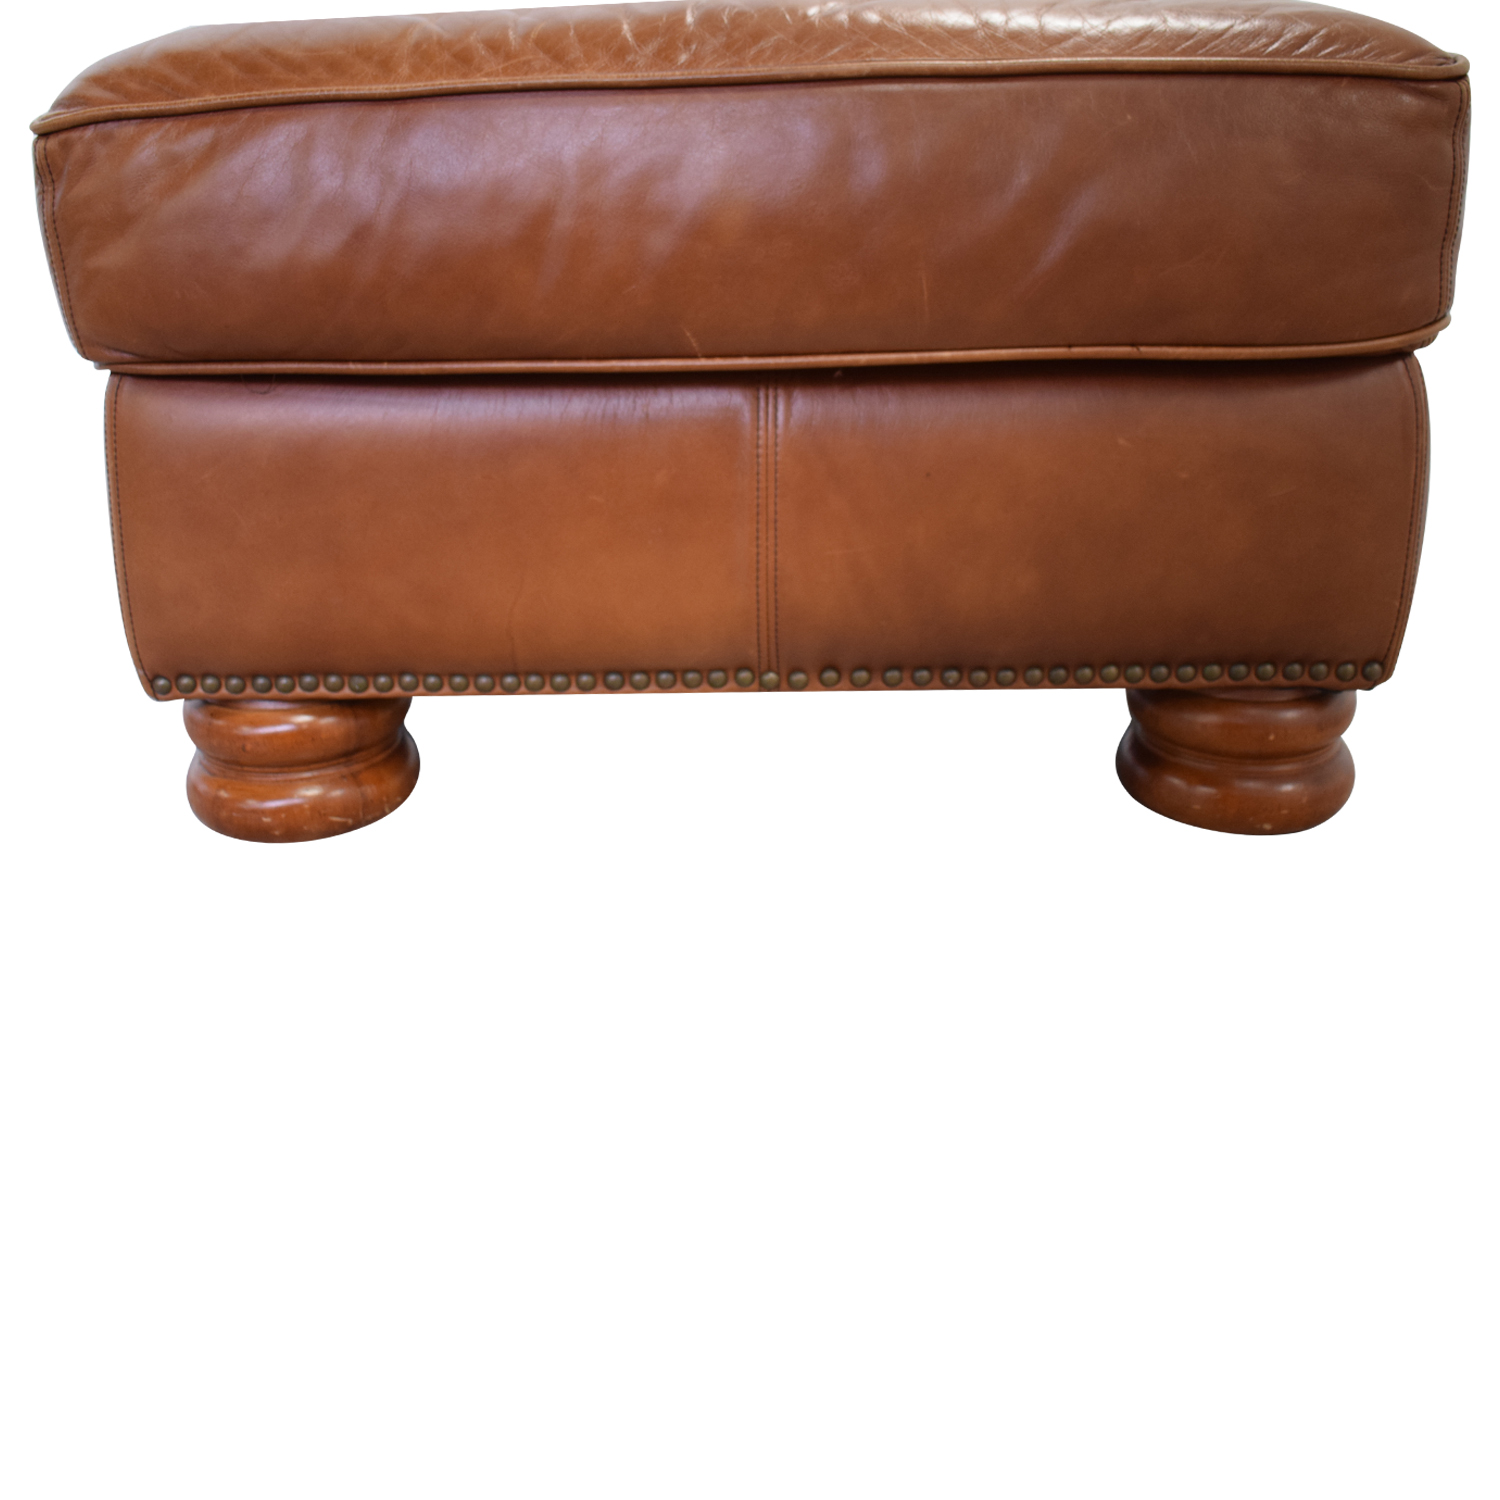 Thomasville Thomasville Brown Leather Ottoman for sale